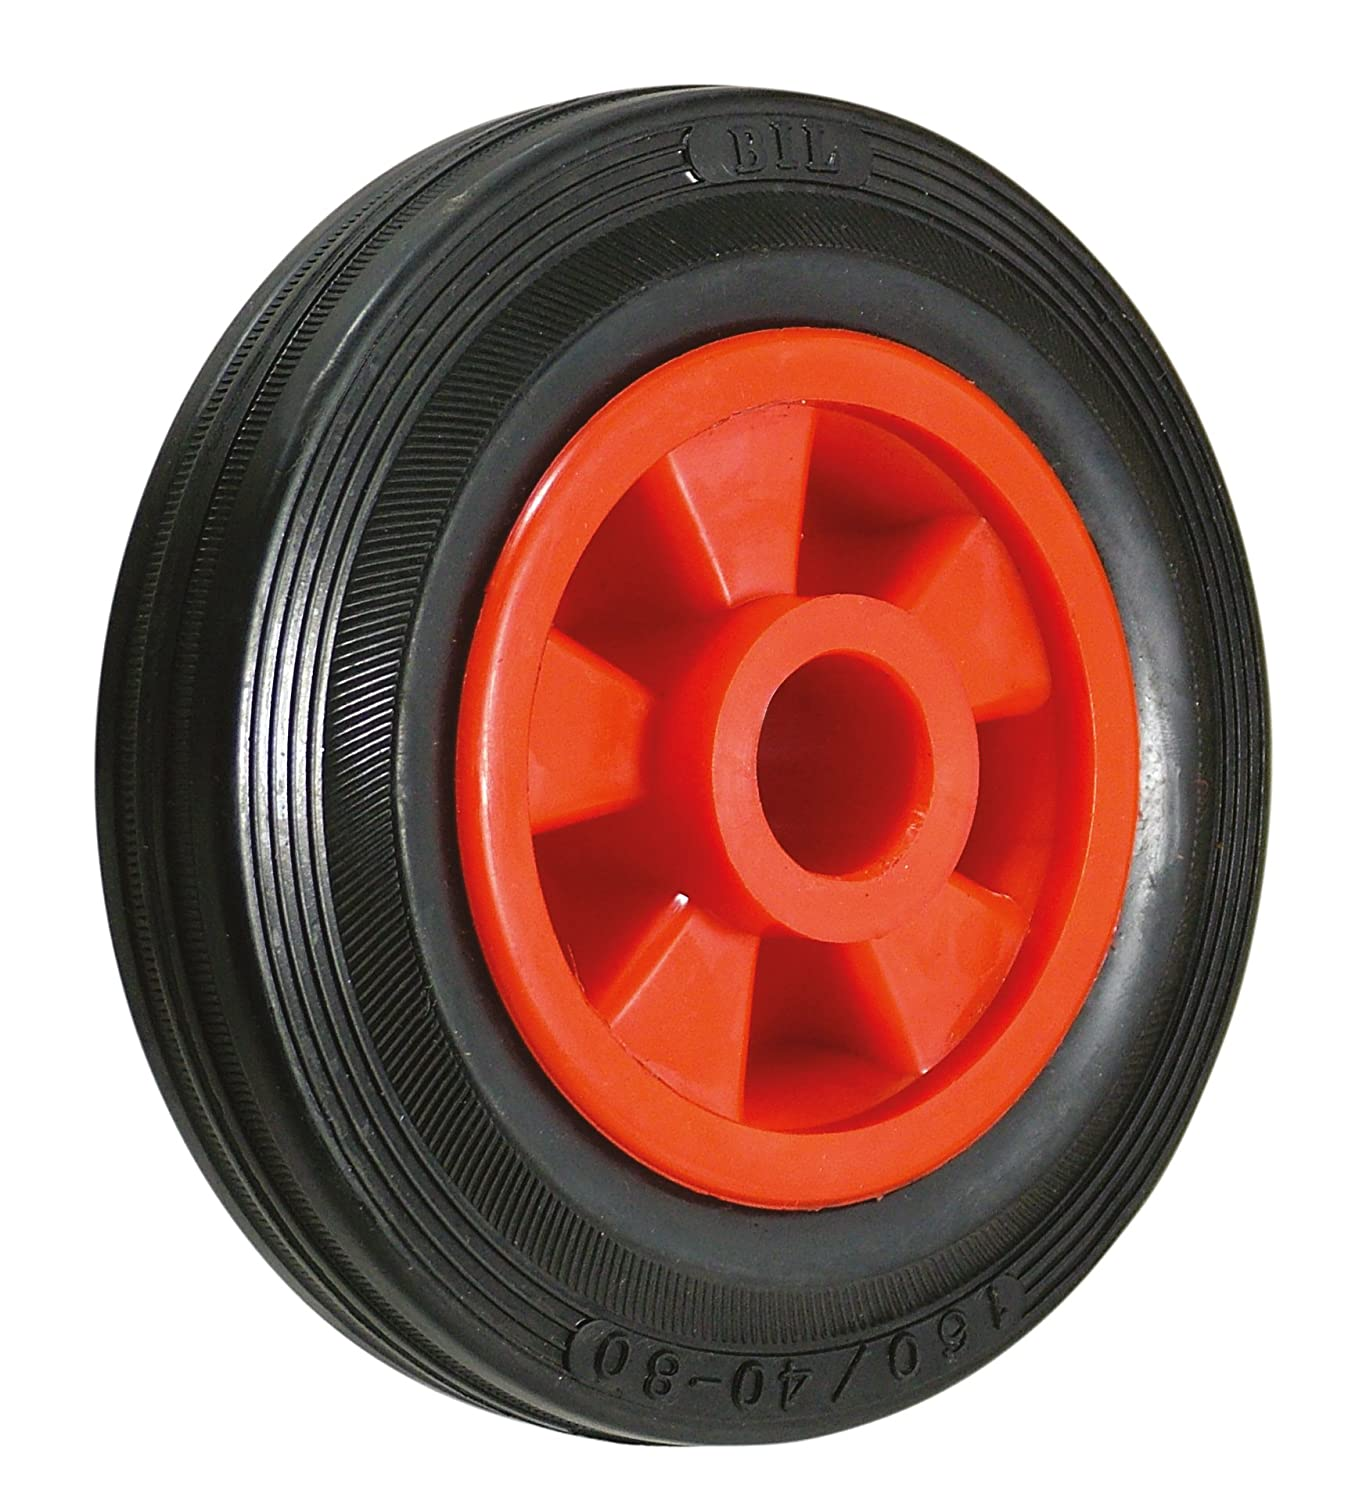 BIL BZWPKR25025451 Series WPK Wheel, Rubber On Polypropylene, 250 mm Diameter, 60 mm Tread, 51 mm Hub, 25.4 mm Bore, 275 kg Load, Black BIL Group Ltd